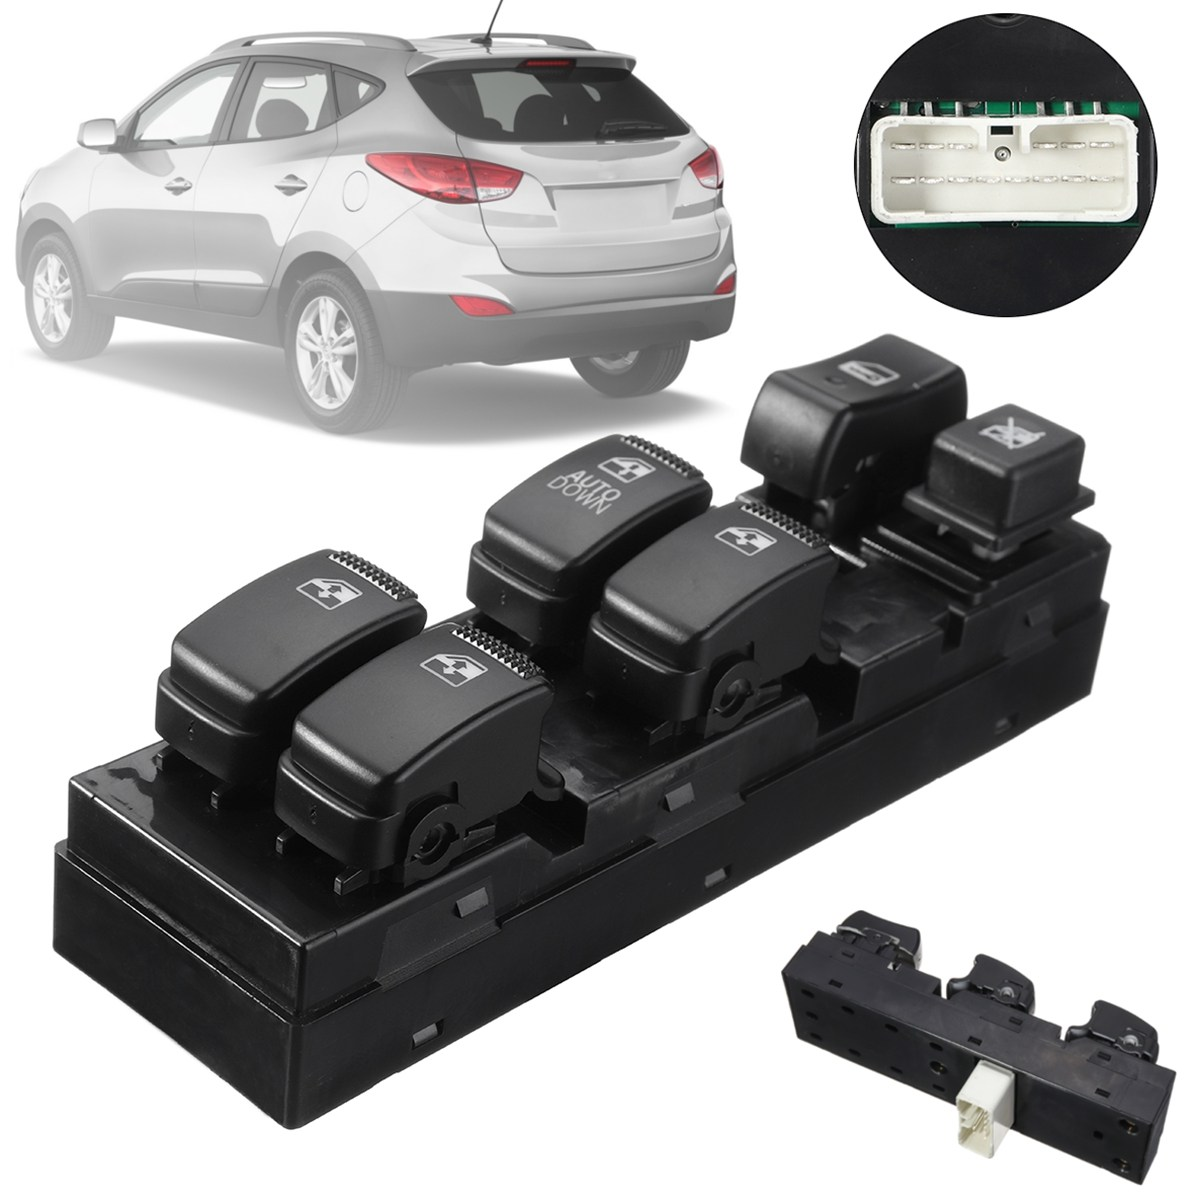 #93570-2E000 #935702E000 #WSHY009 ABS Front Left Driver Side Electric Power Window Switch For Hyundai Tucson 2009 2010 2008 2007 85720 58010 front driver side electric window motor for 2008 toyota 4runner window regulator motor